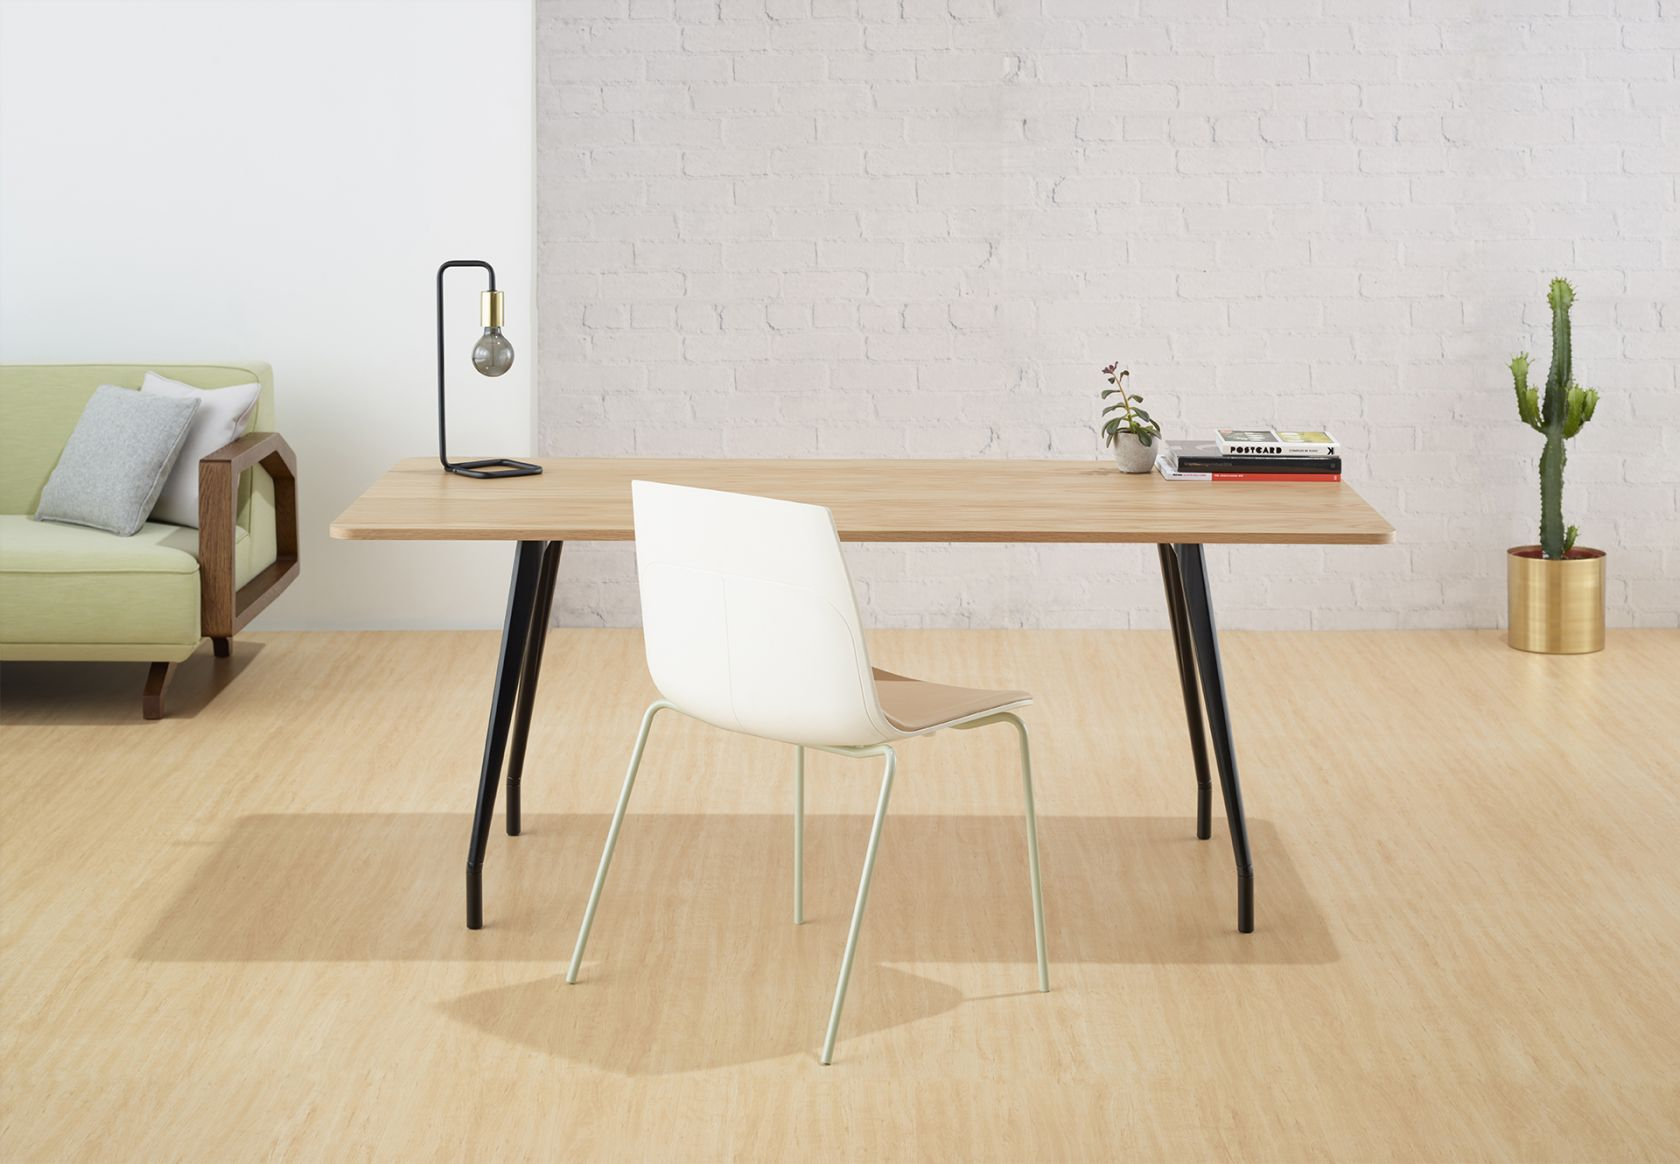 MR Chair and Aire Table